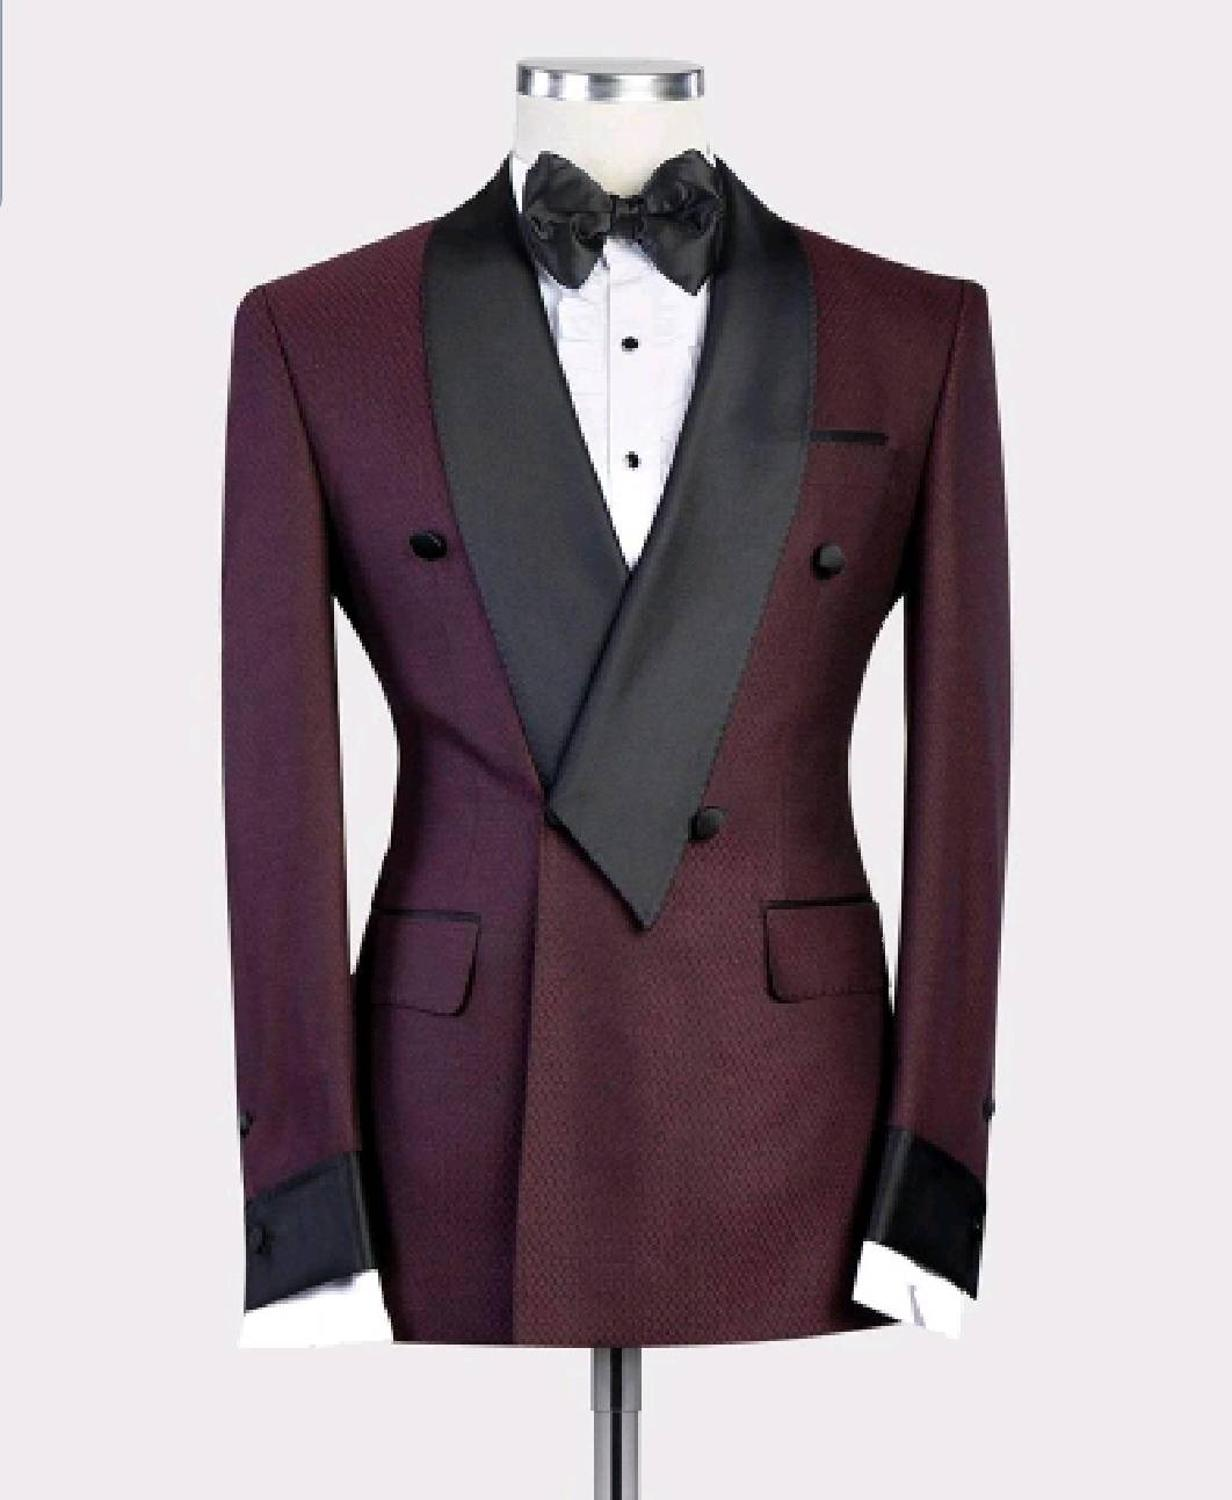 Image 1 - 2019 New Burgundy Red With Black Lapel Men's Slim Fit Formal Suits Custom Made 2 Pieces Wedding Tuxedos Suits Jacket Pants-in Suits from Men's Clothing